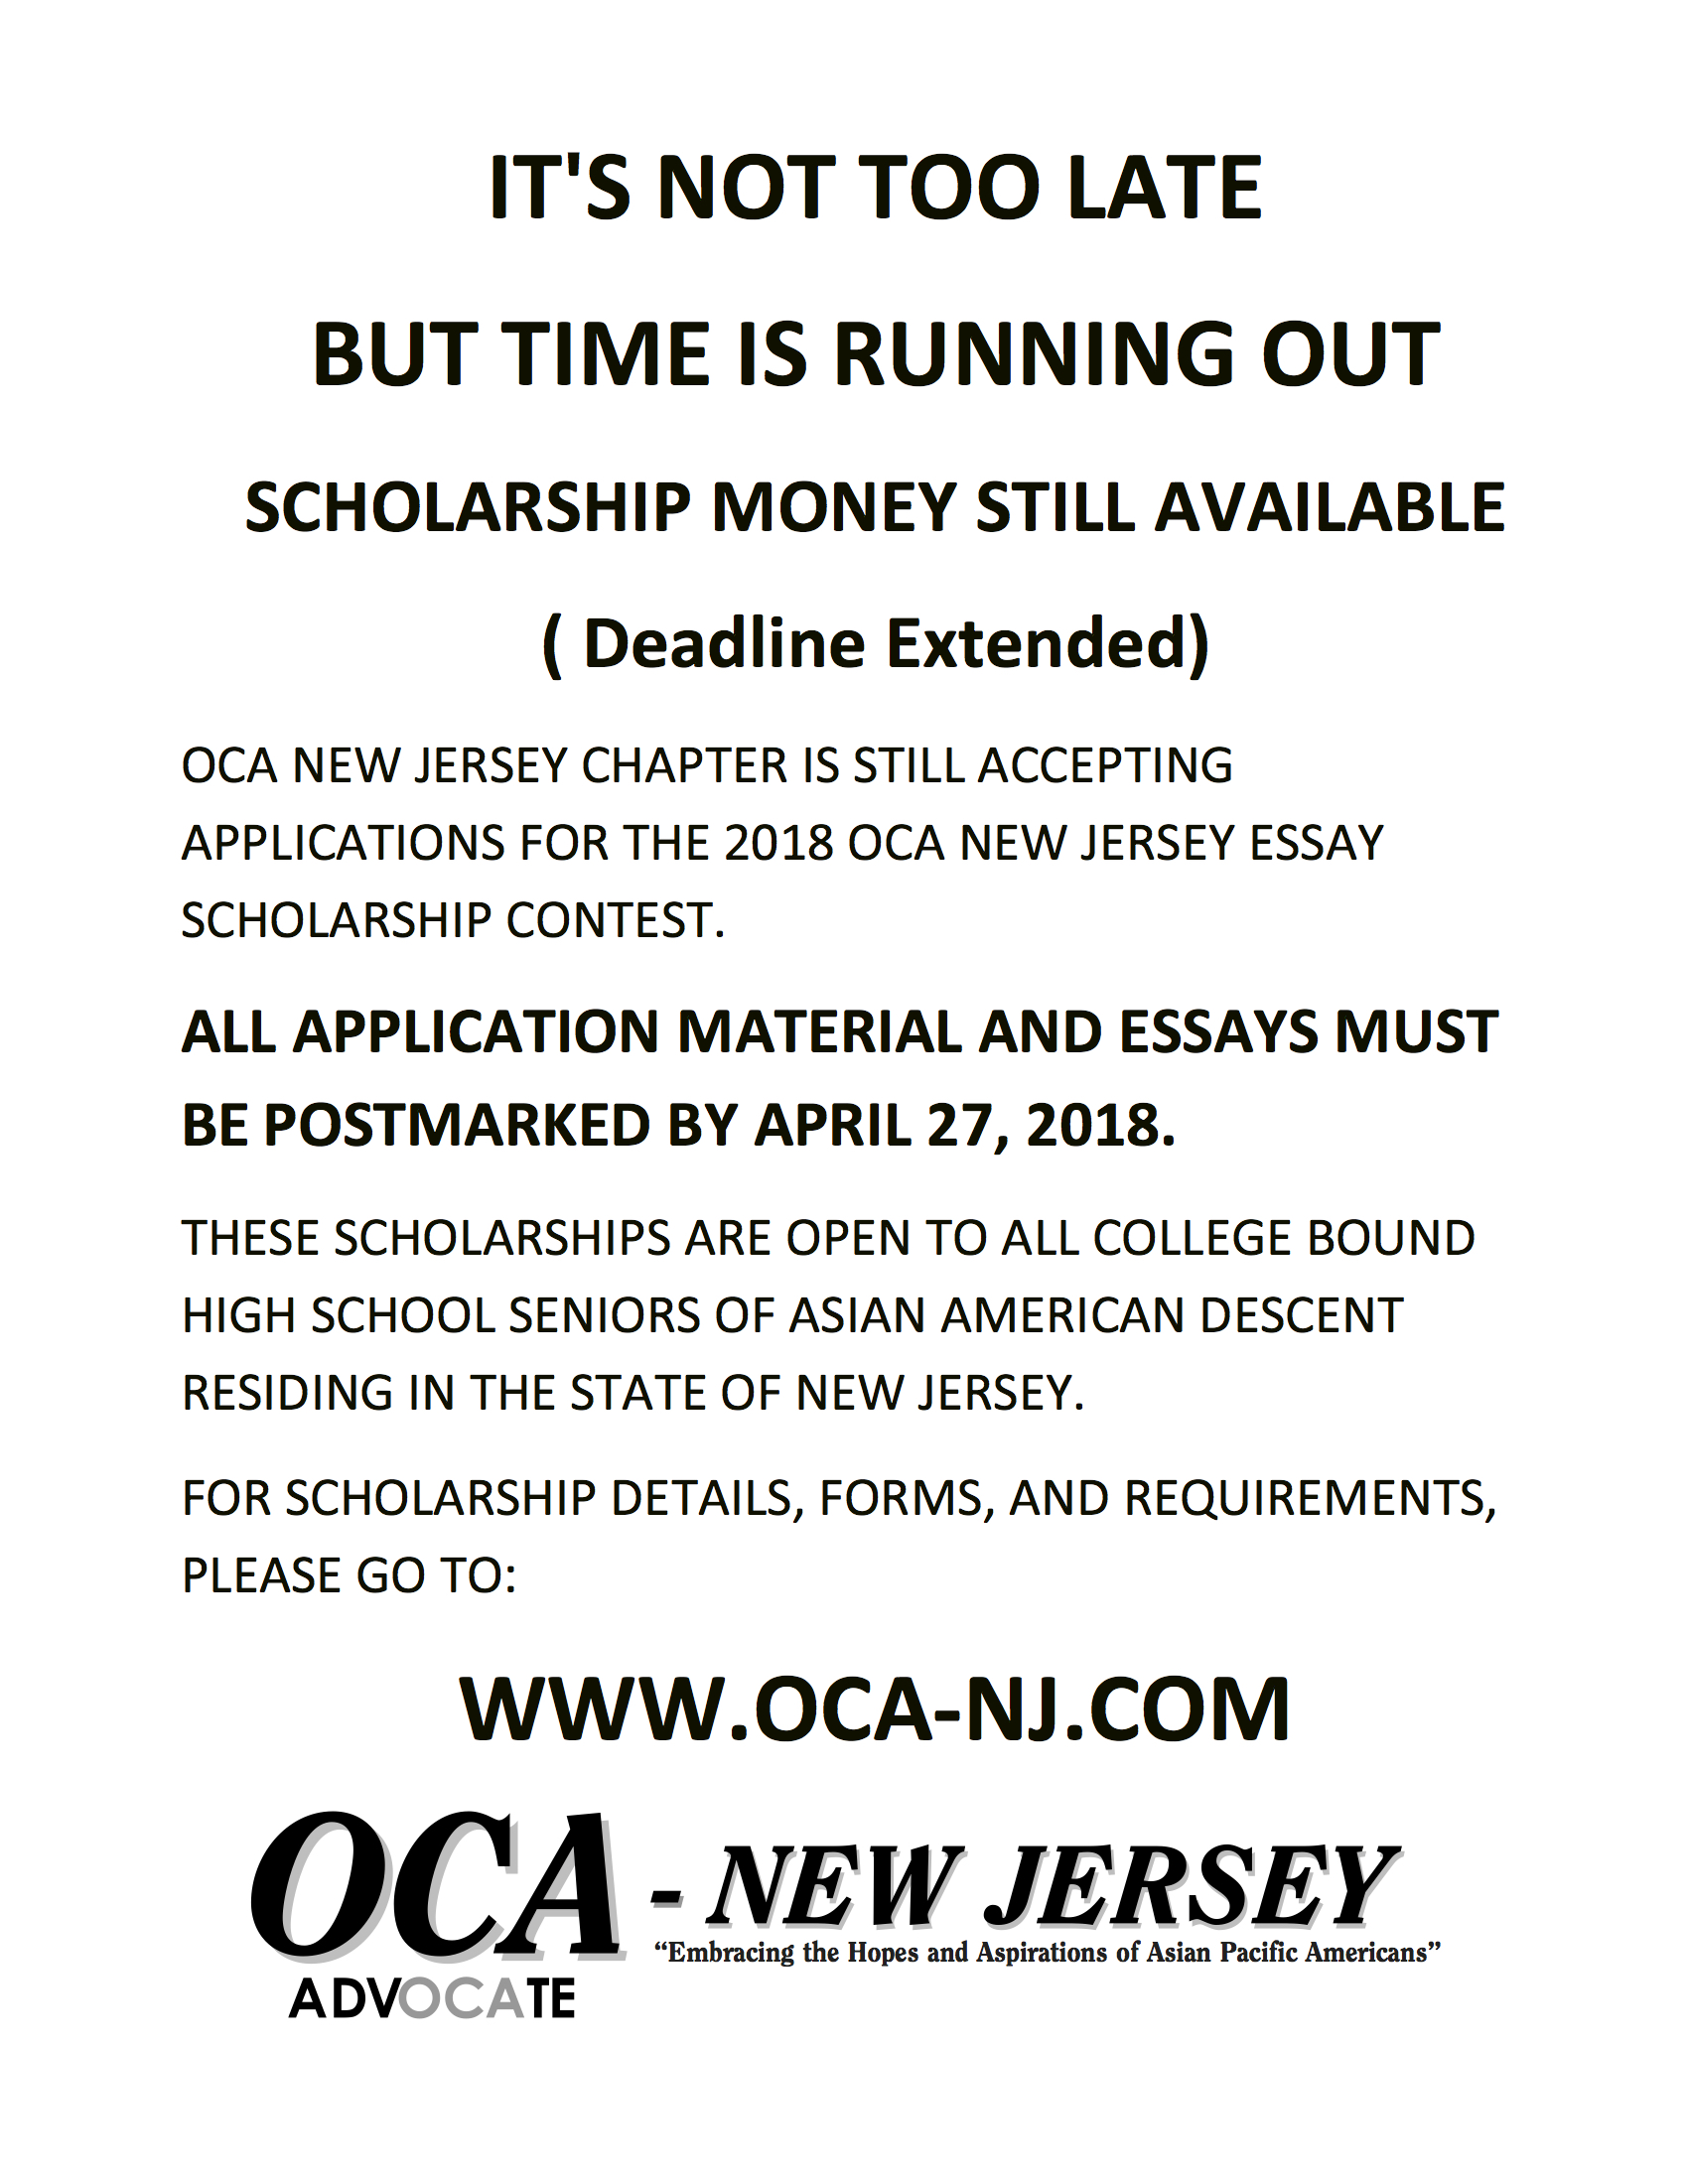 014 Essay Example Scholarships Entended Deadline Oca Nj Shocking For High School Sophomores No 2018 Full